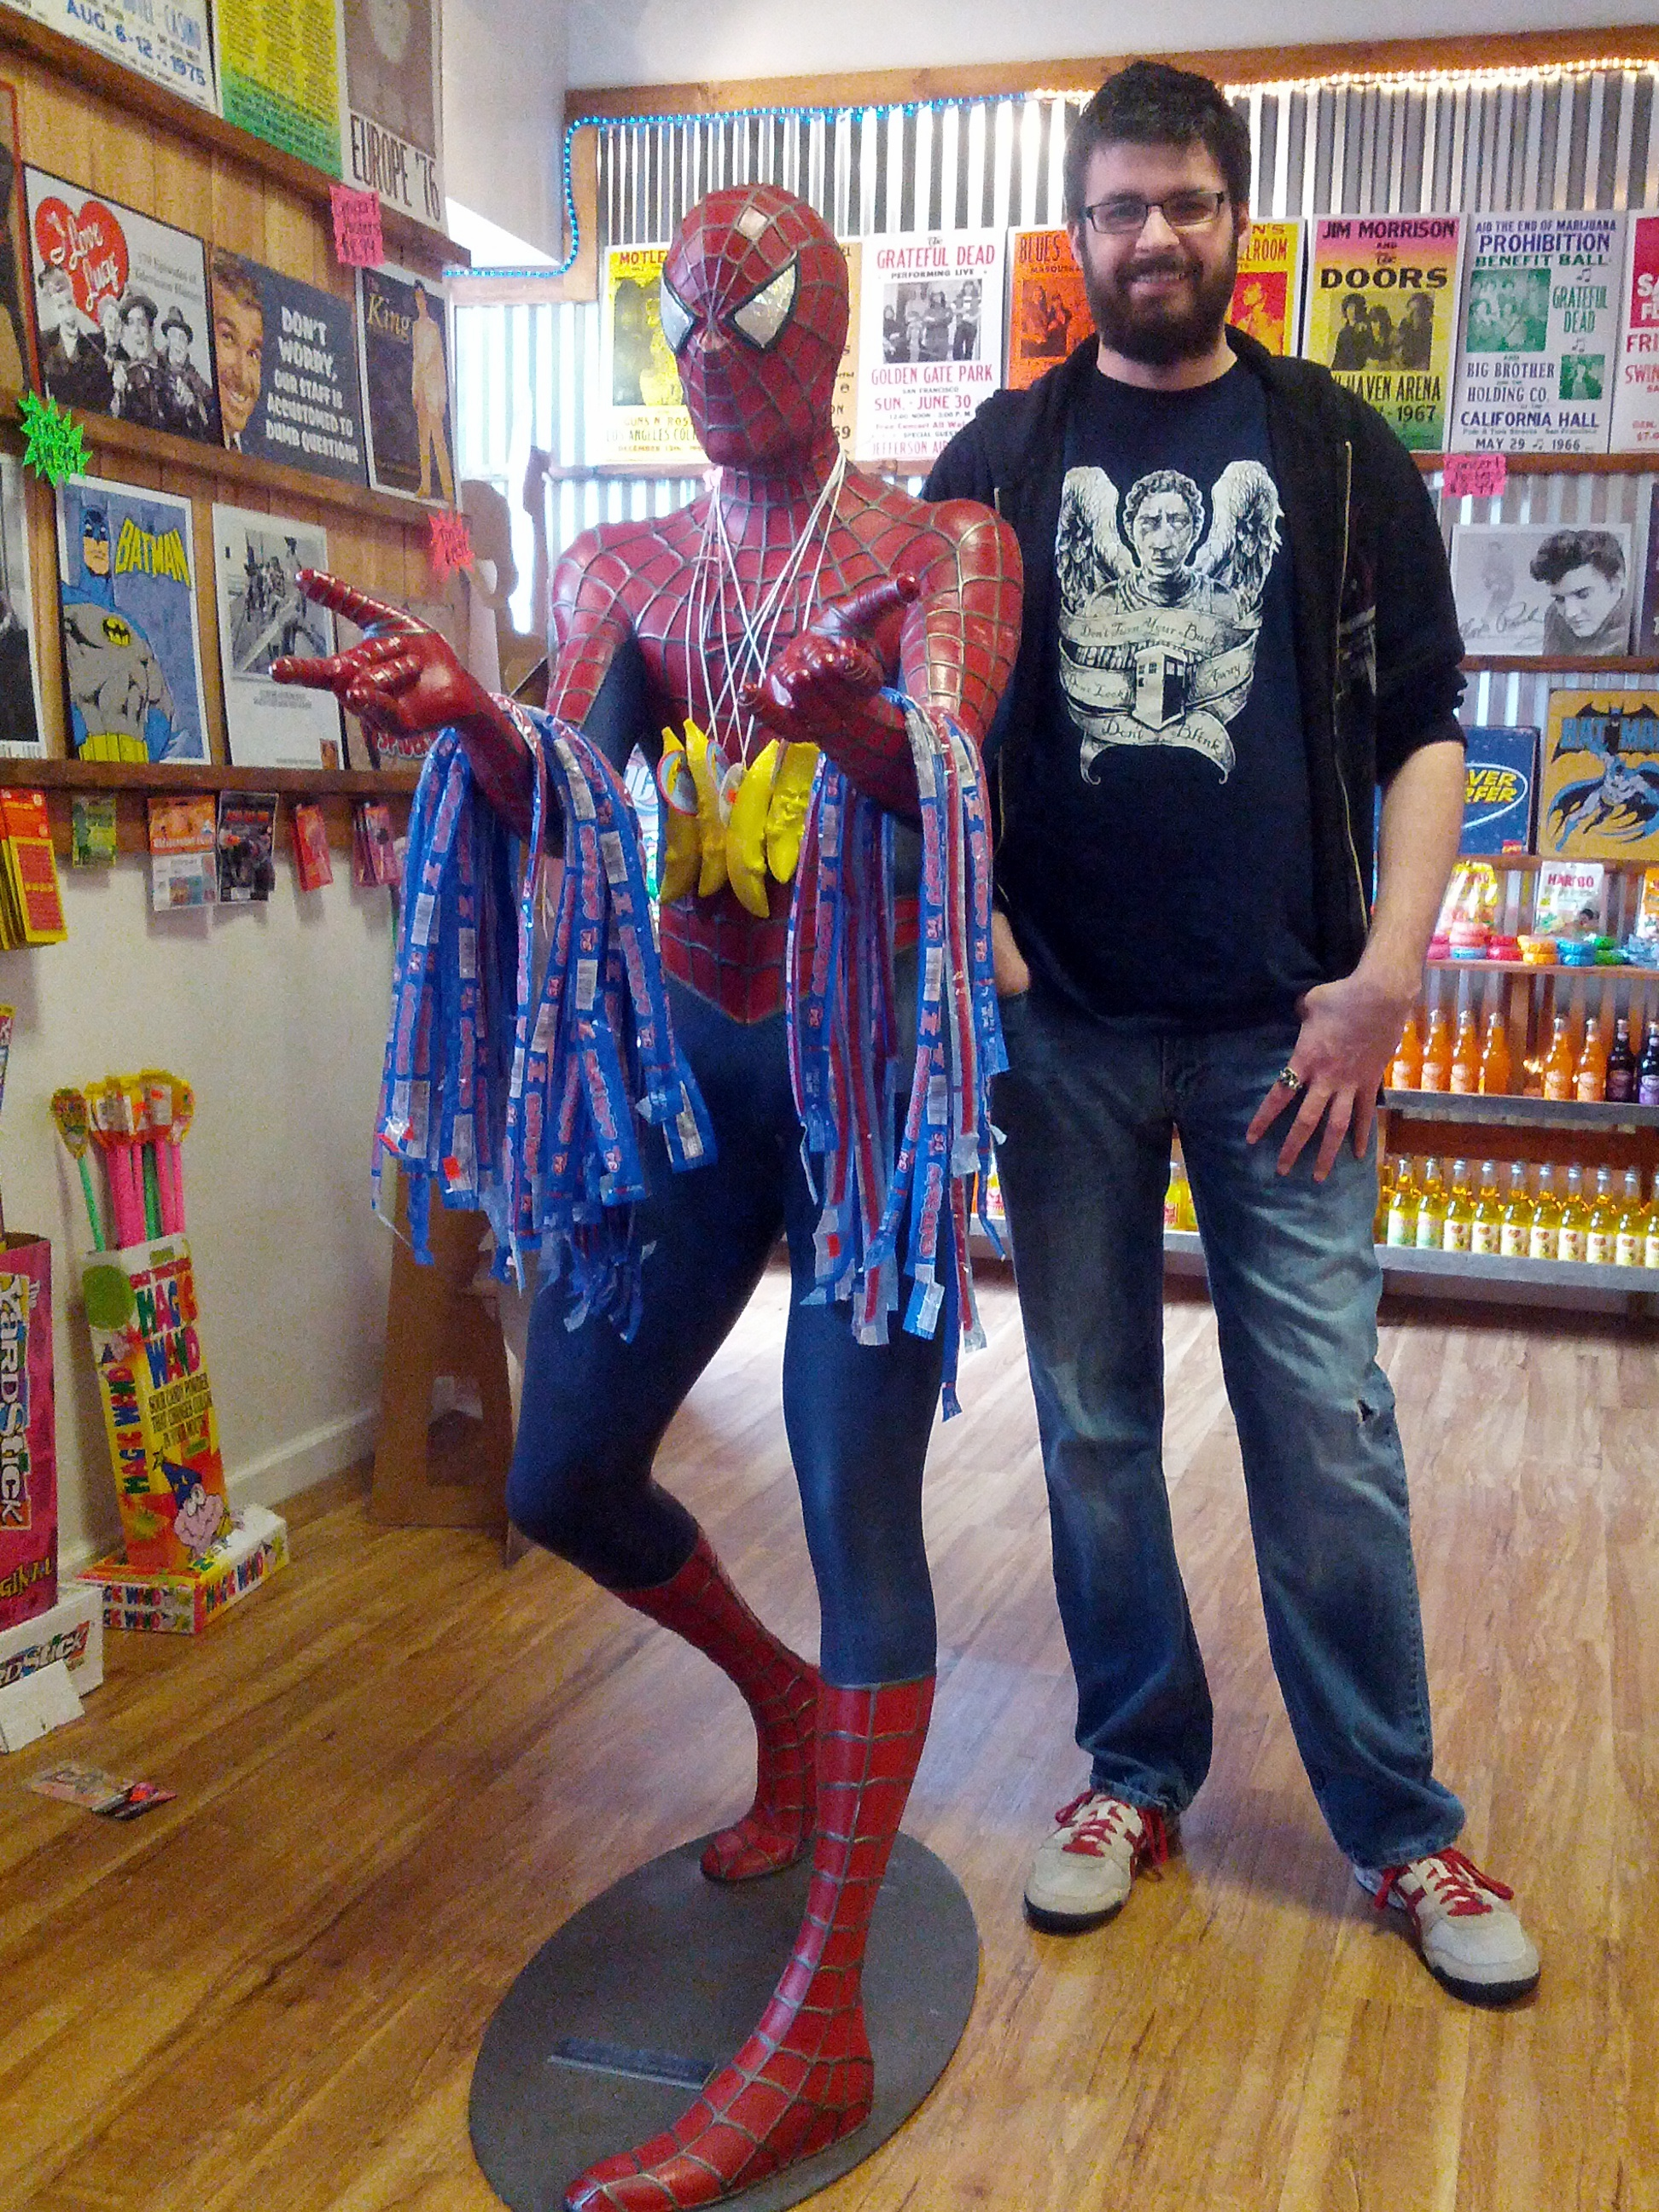 Rocket Fizz has some real cool, geeky stuff inside